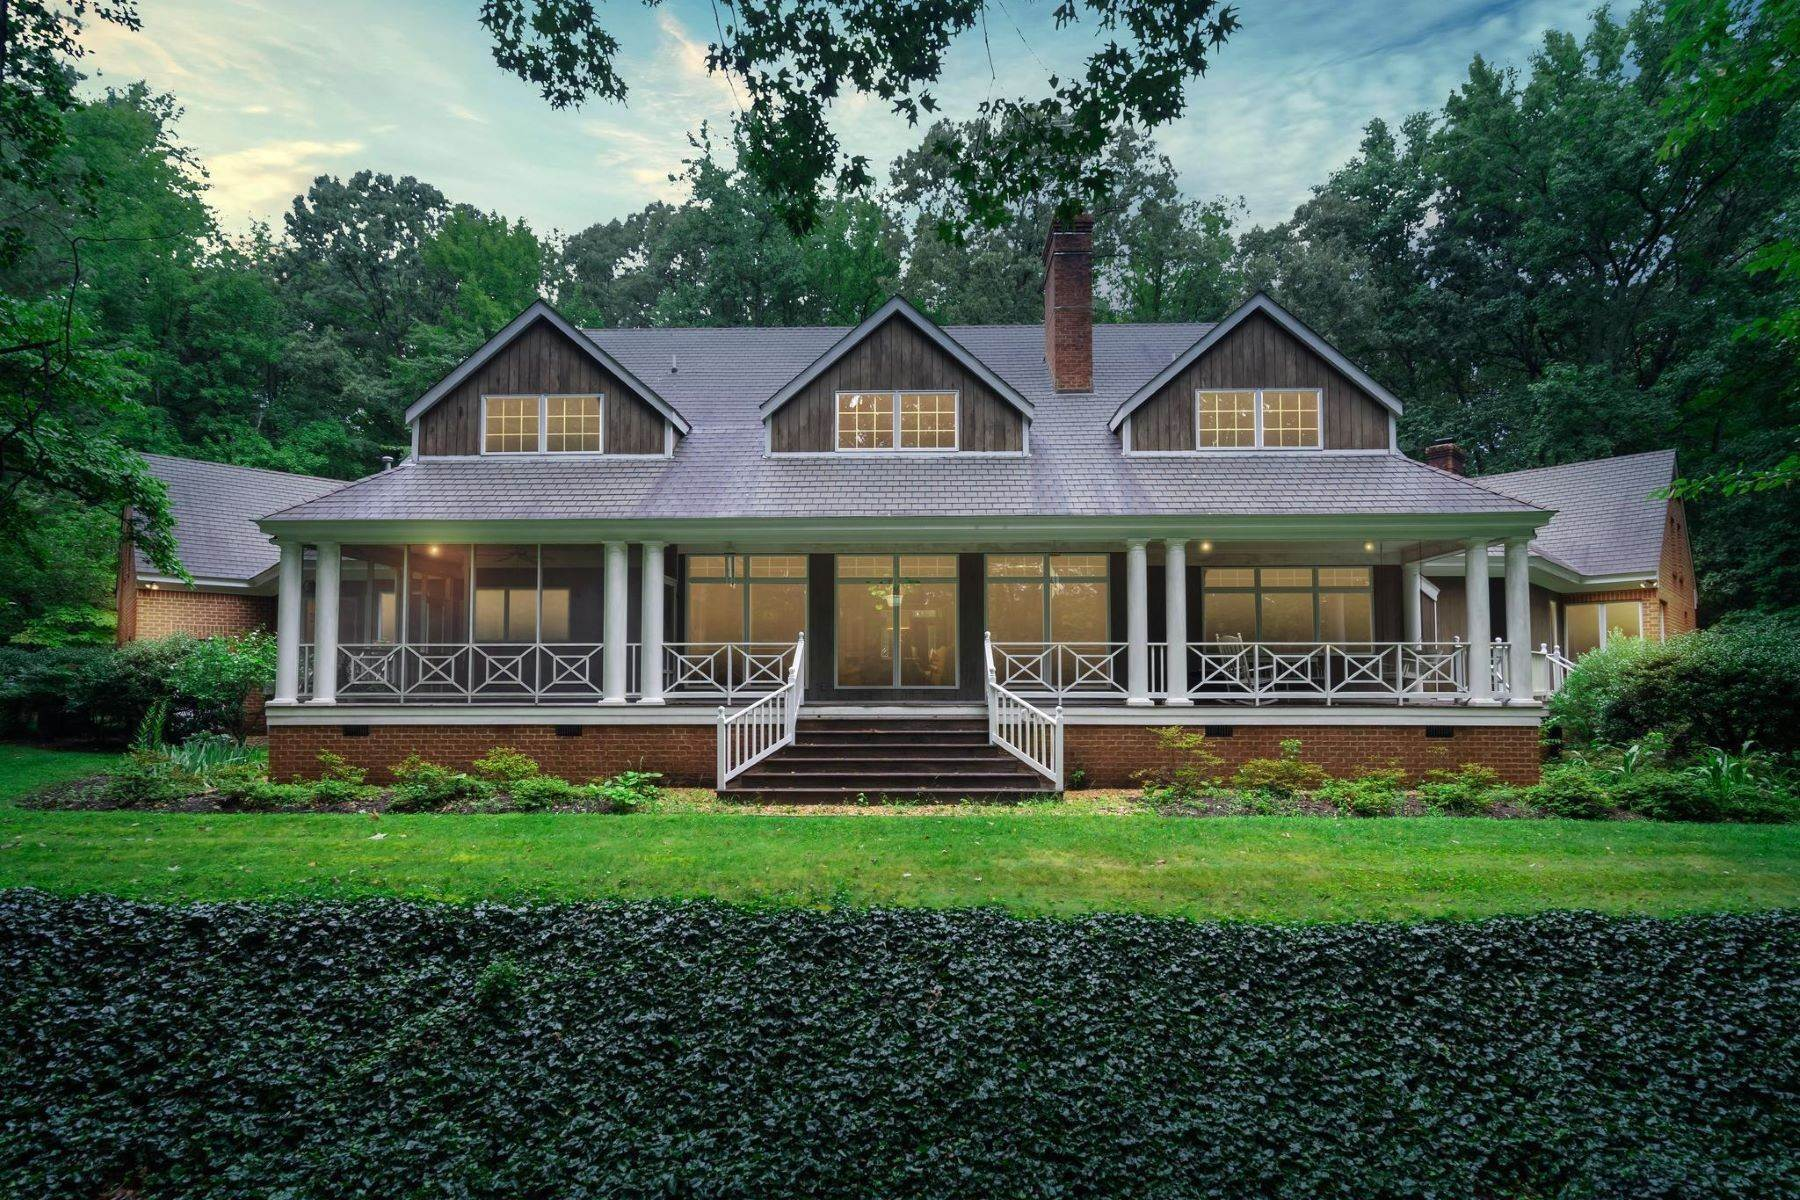 Single Family Homes at Montross, Virginia, 22520 United States